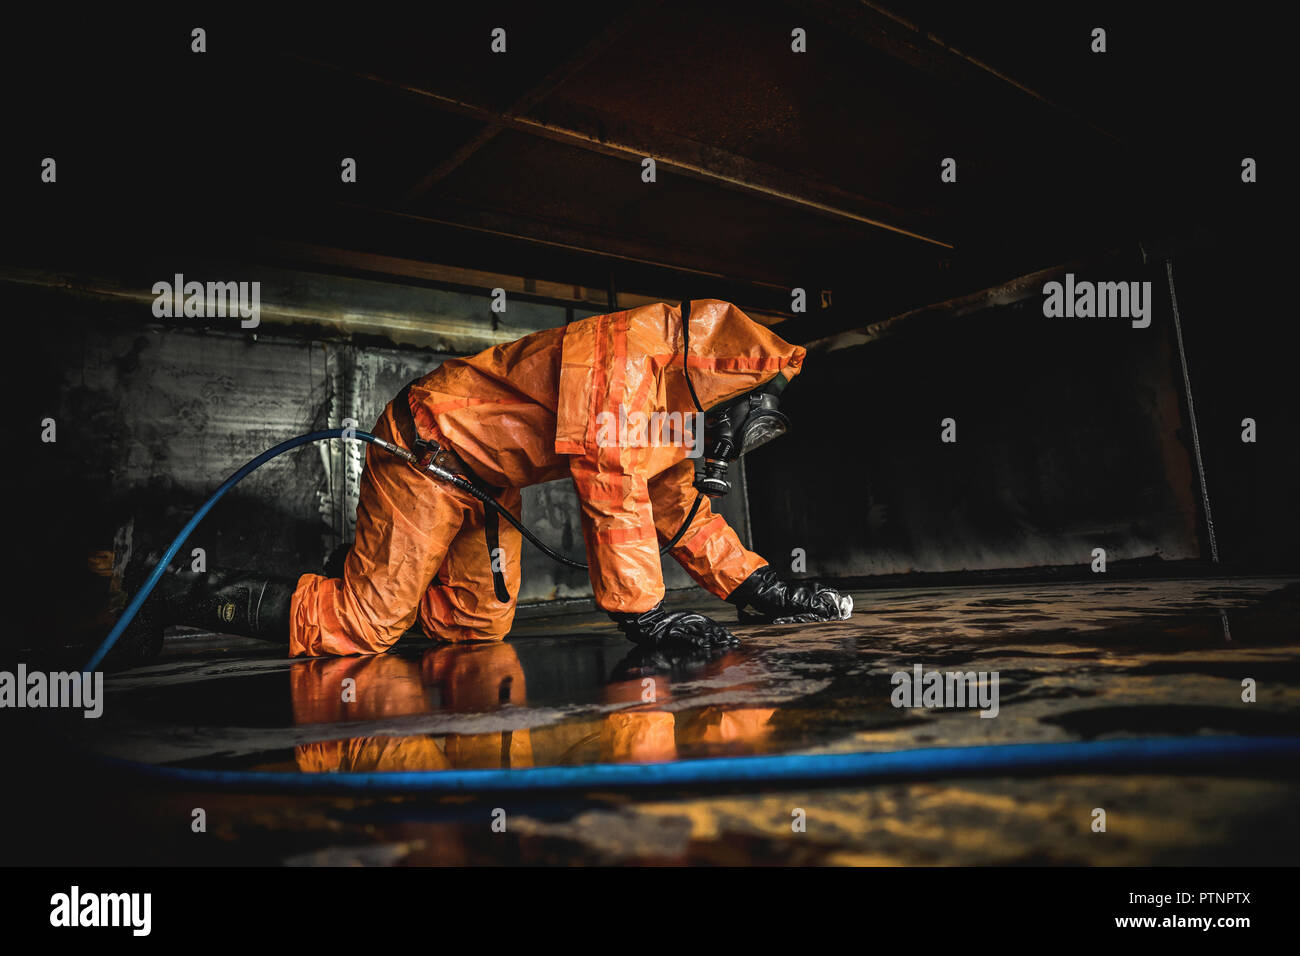 tank cleaning - Stock Image